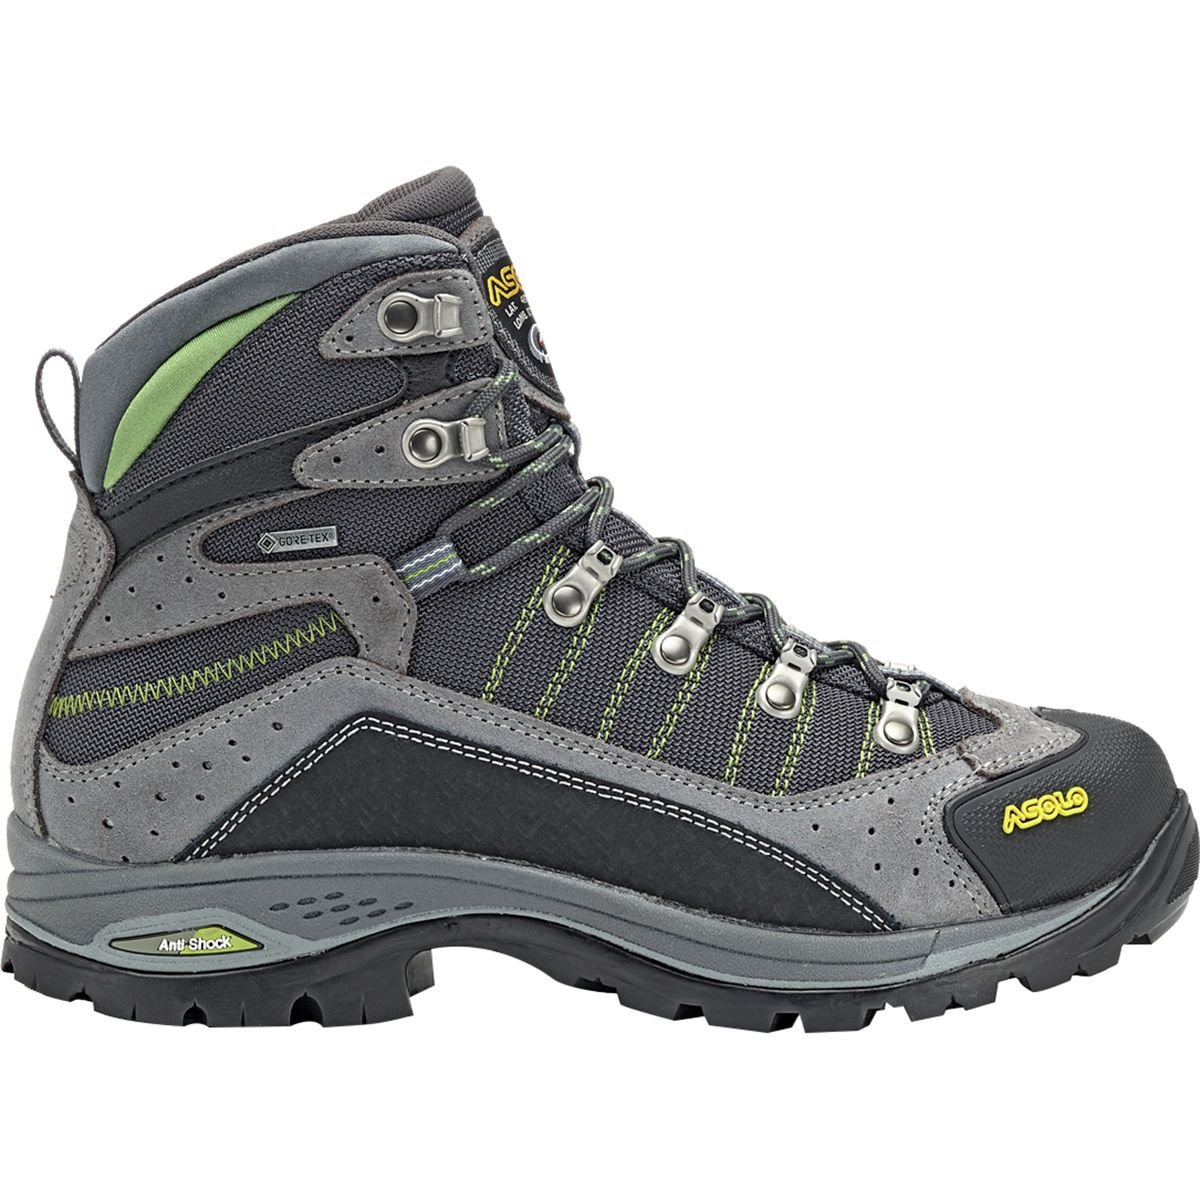 Asolo Drifter GV Evo Boot - Women's B07DCDM1XN 6 B(M) US|Donkey/English Ivy